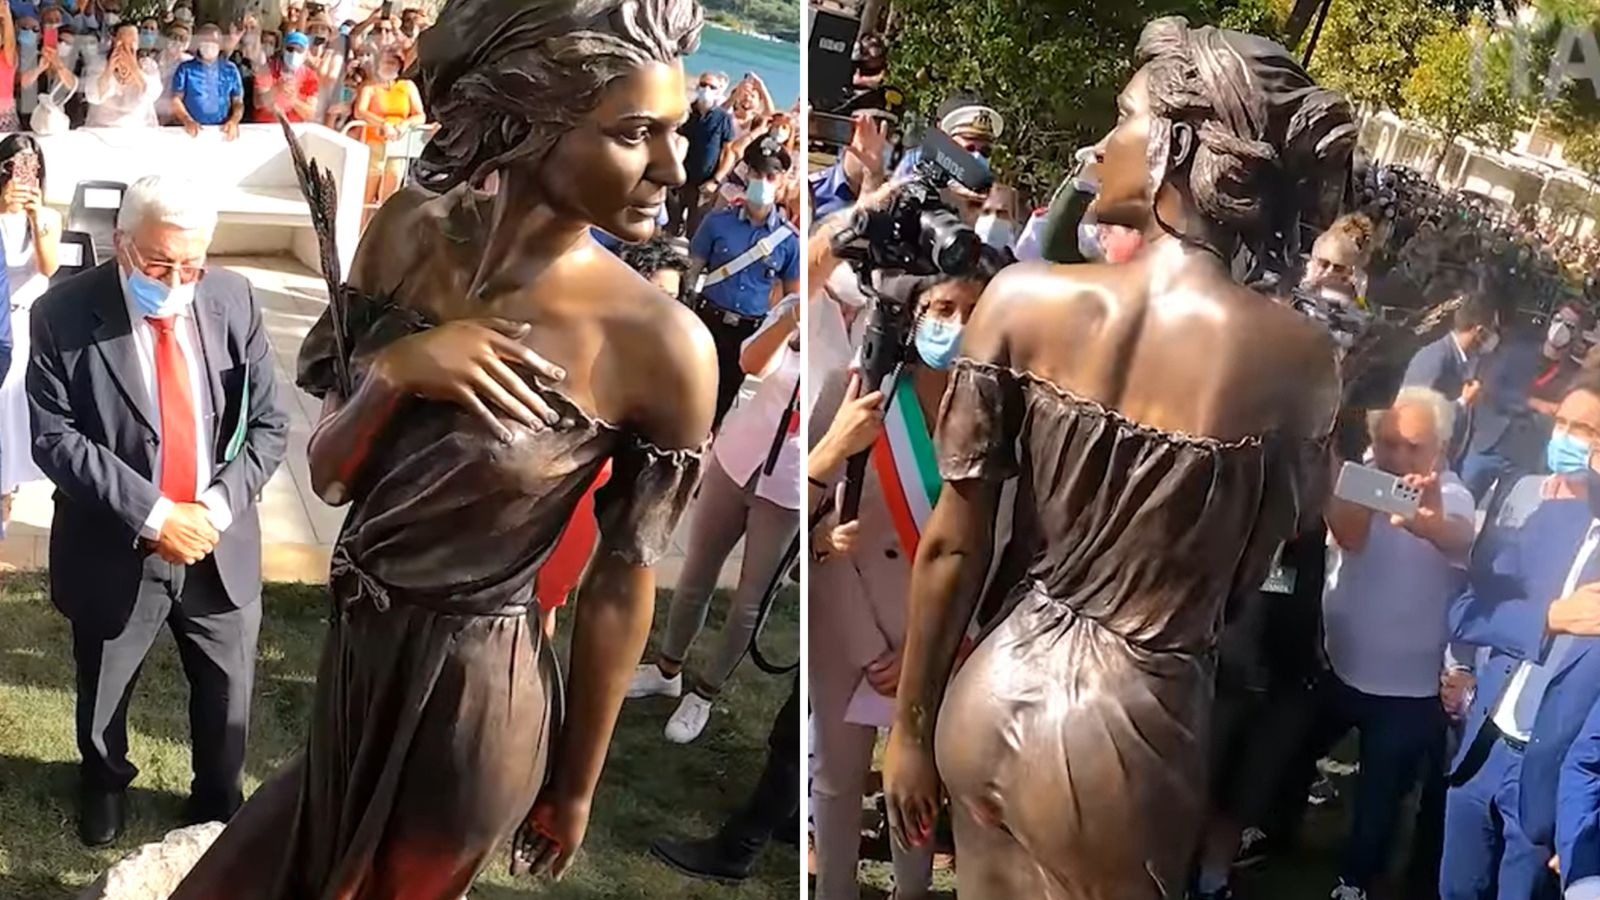 Bronze statue of woman in see-through dress sparks sexism row in Italy |  World News | Sky News